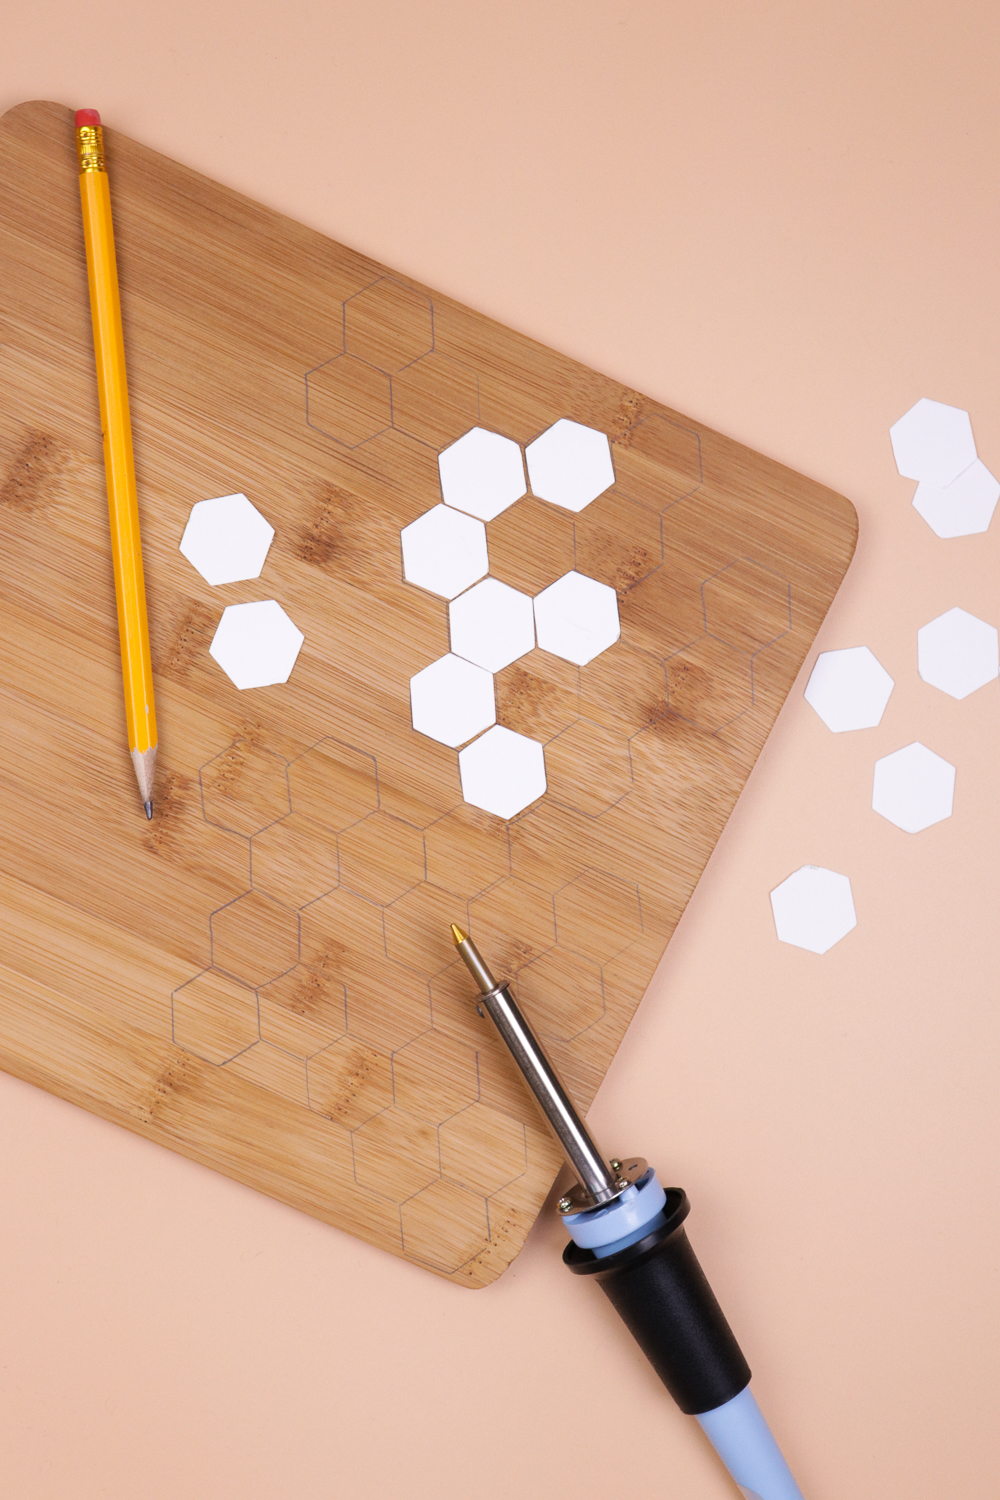 diy-honeycomb-wood-burned-cutting-board